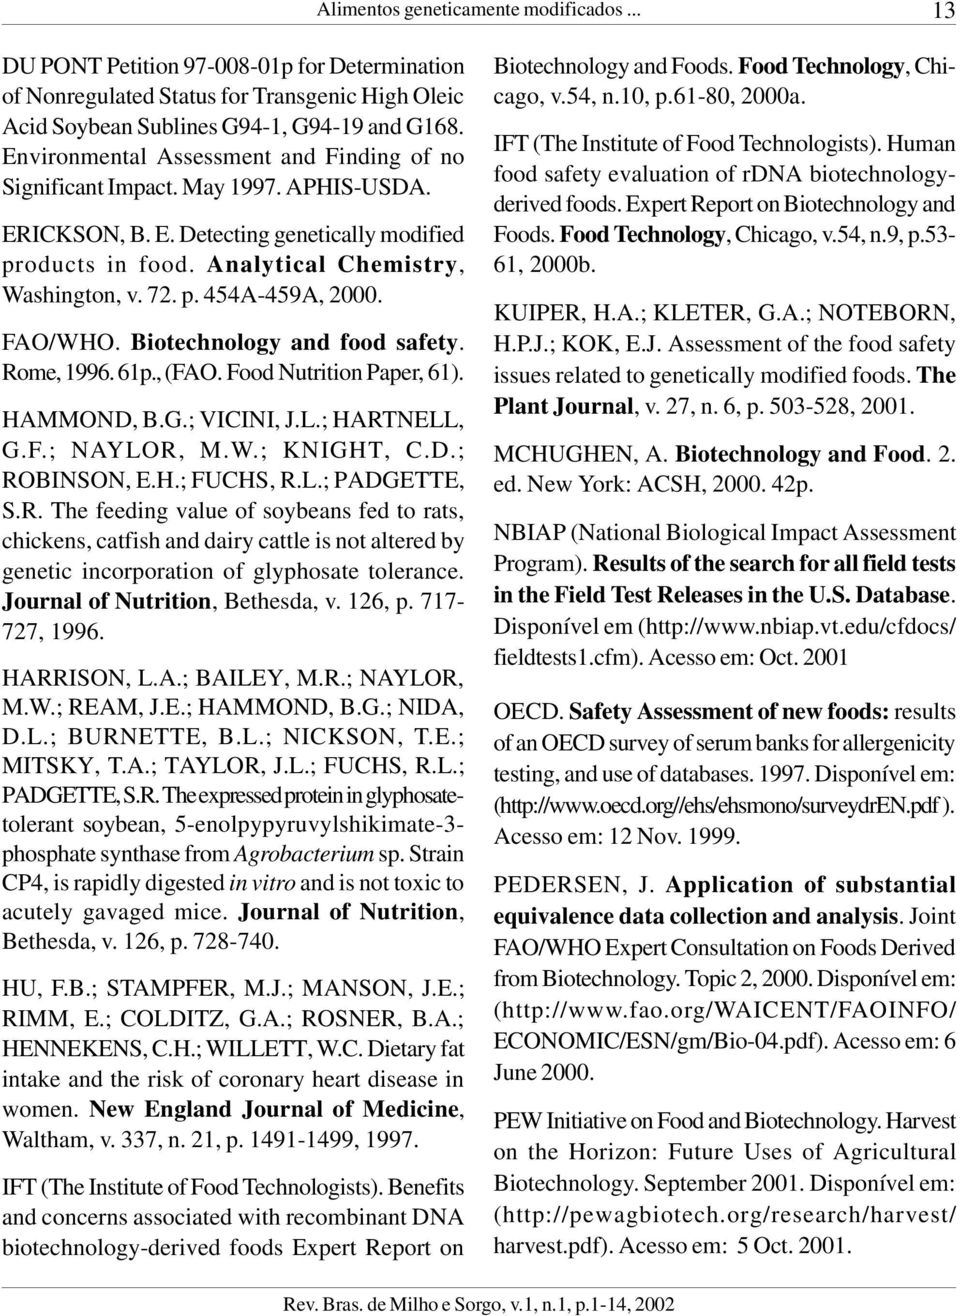 FAO/WHO. Biotechnology and food safety. Rome, 1996. 61p., (FAO. Food Nutrition Paper, 61). HAMMOND, B.G.; VICINI, J.L.; HARTNELL, G.F.; NAYLOR, M.W.; KNIGHT, C.D.; ROBINSON, E.H.; FUCHS, R.L.; PADGETTE, S.